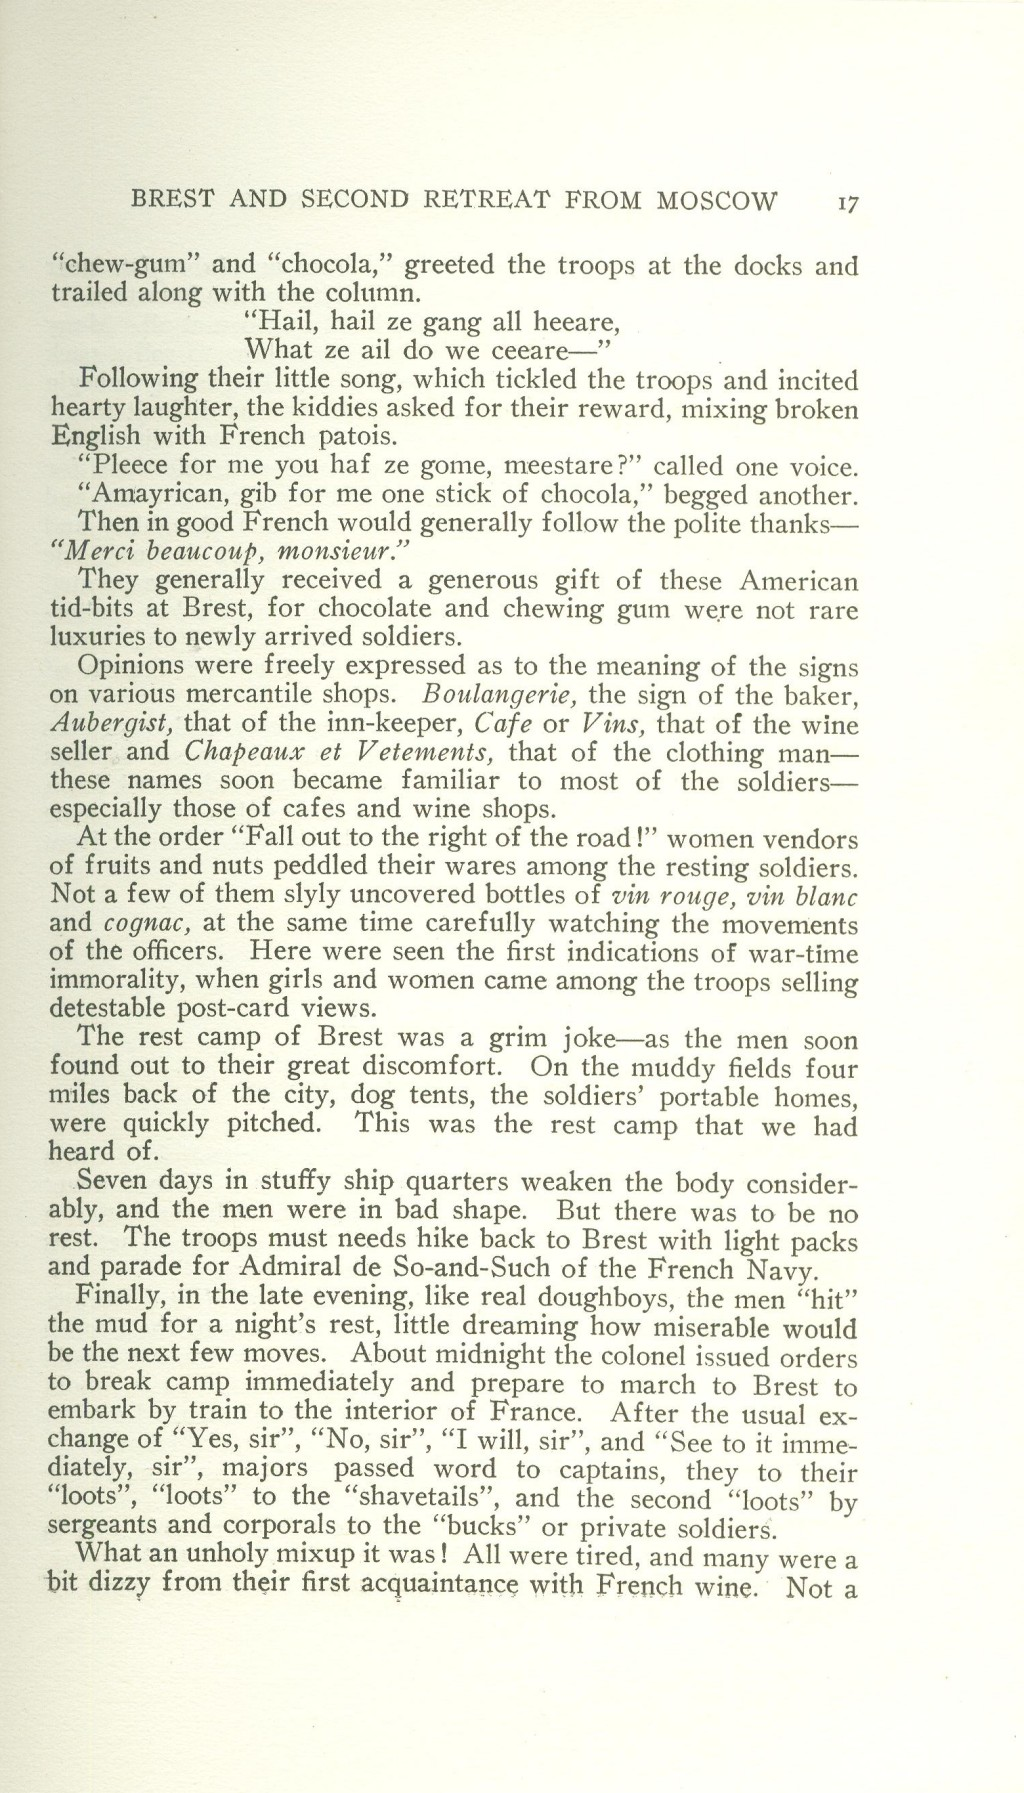 Veterans 314th Infantry Regiment A.E.F. - Under The Lorraine Cross - book by Arthur H. Joel - 1921 - Page 017